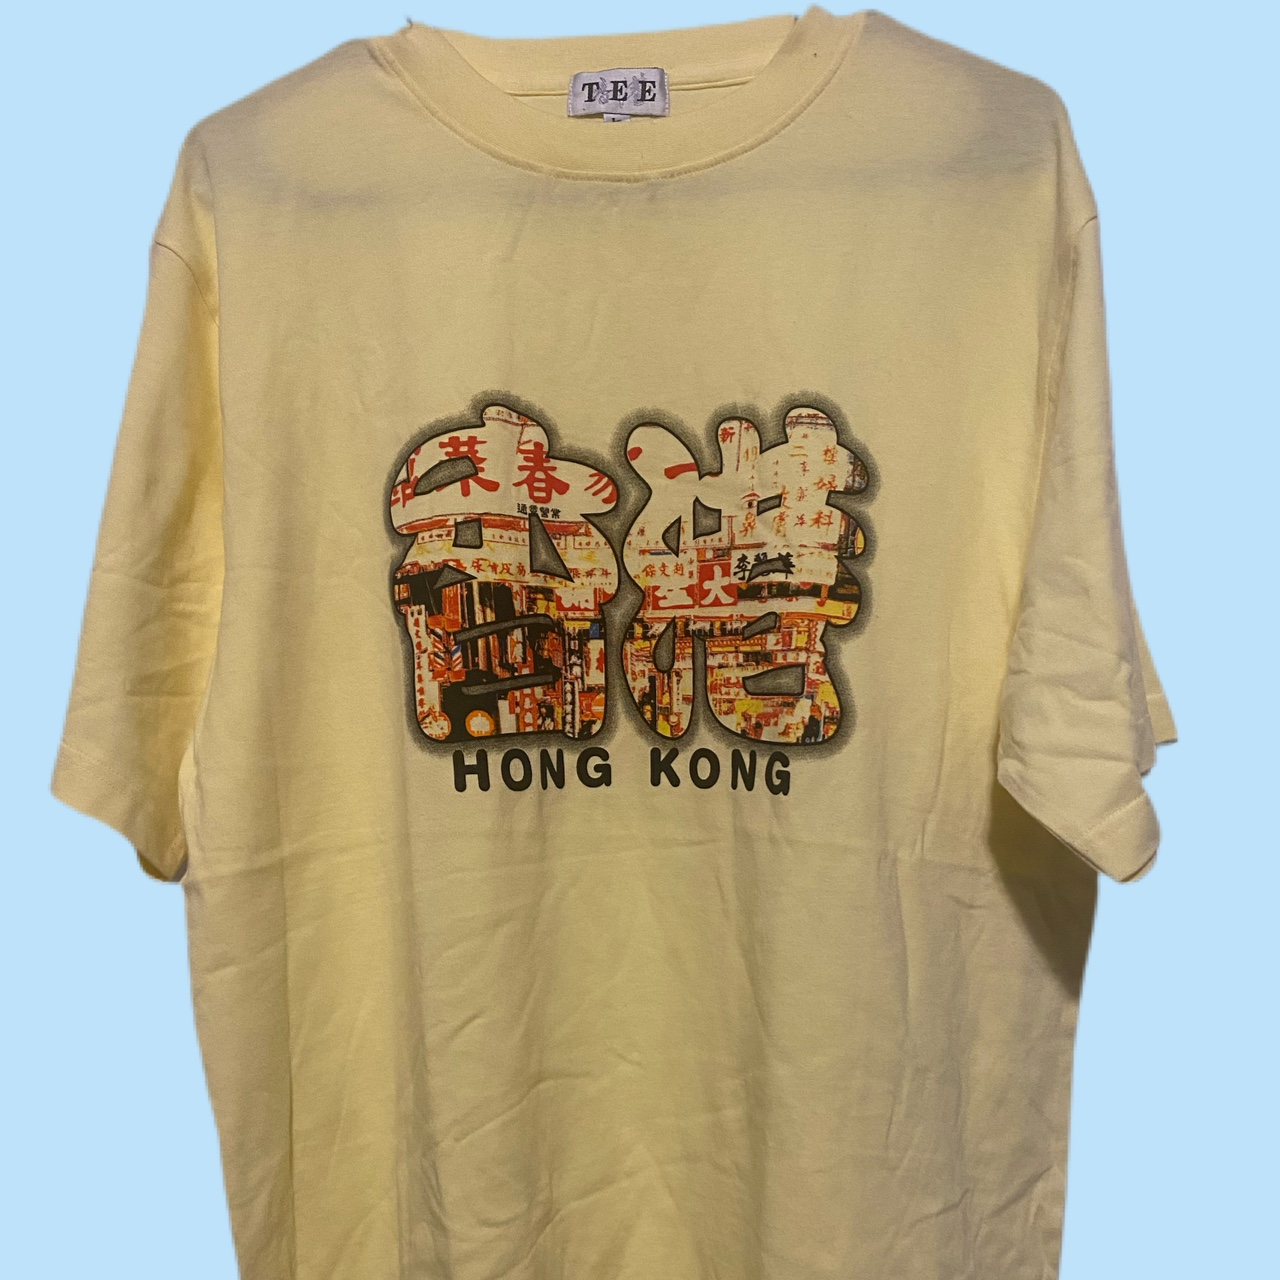 Product Image 1 - This is a t-shirt from